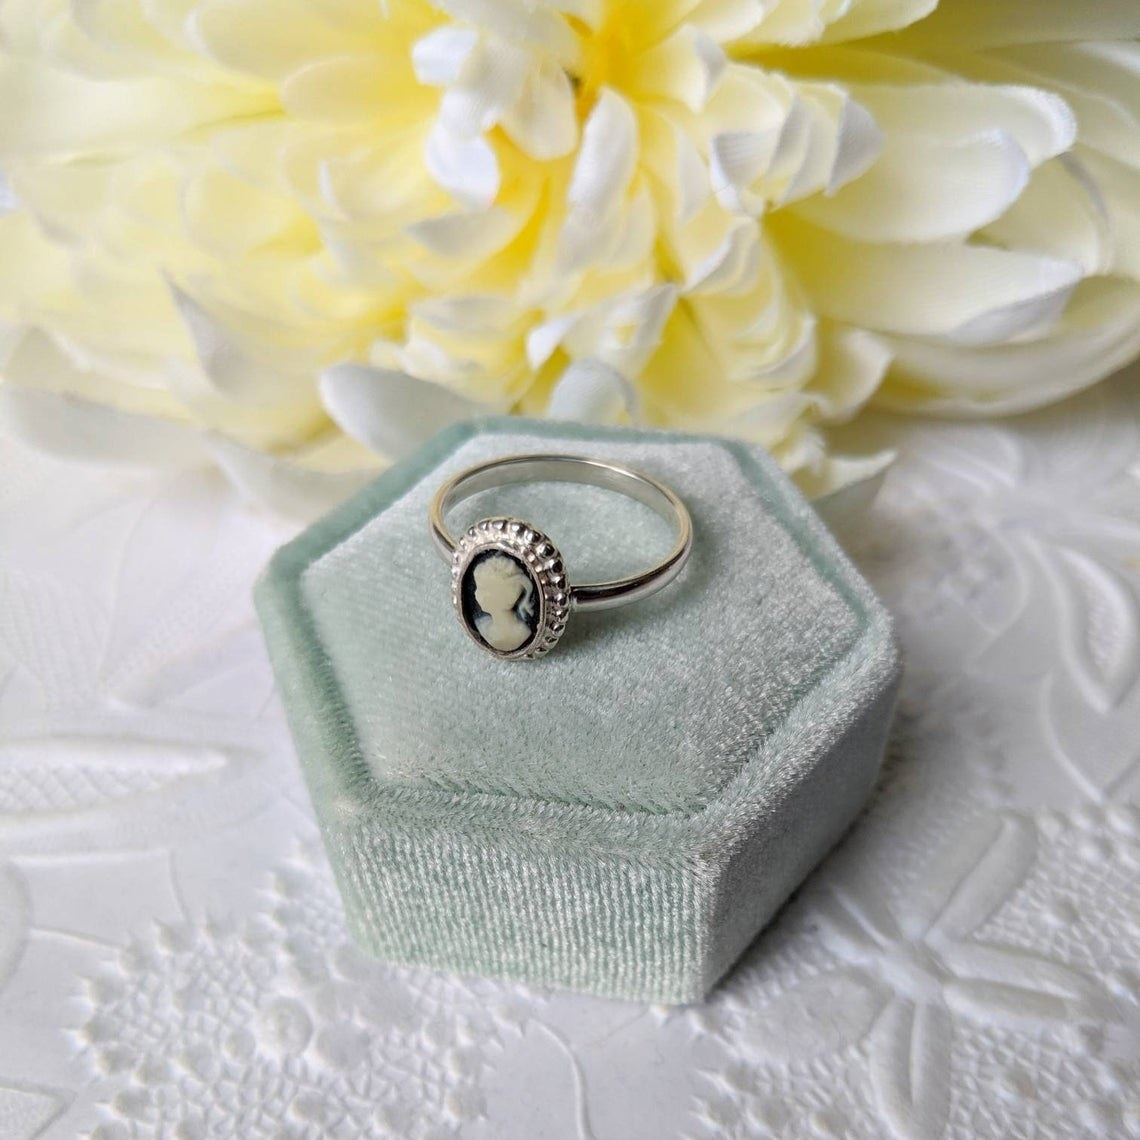 The cameo ring in its box